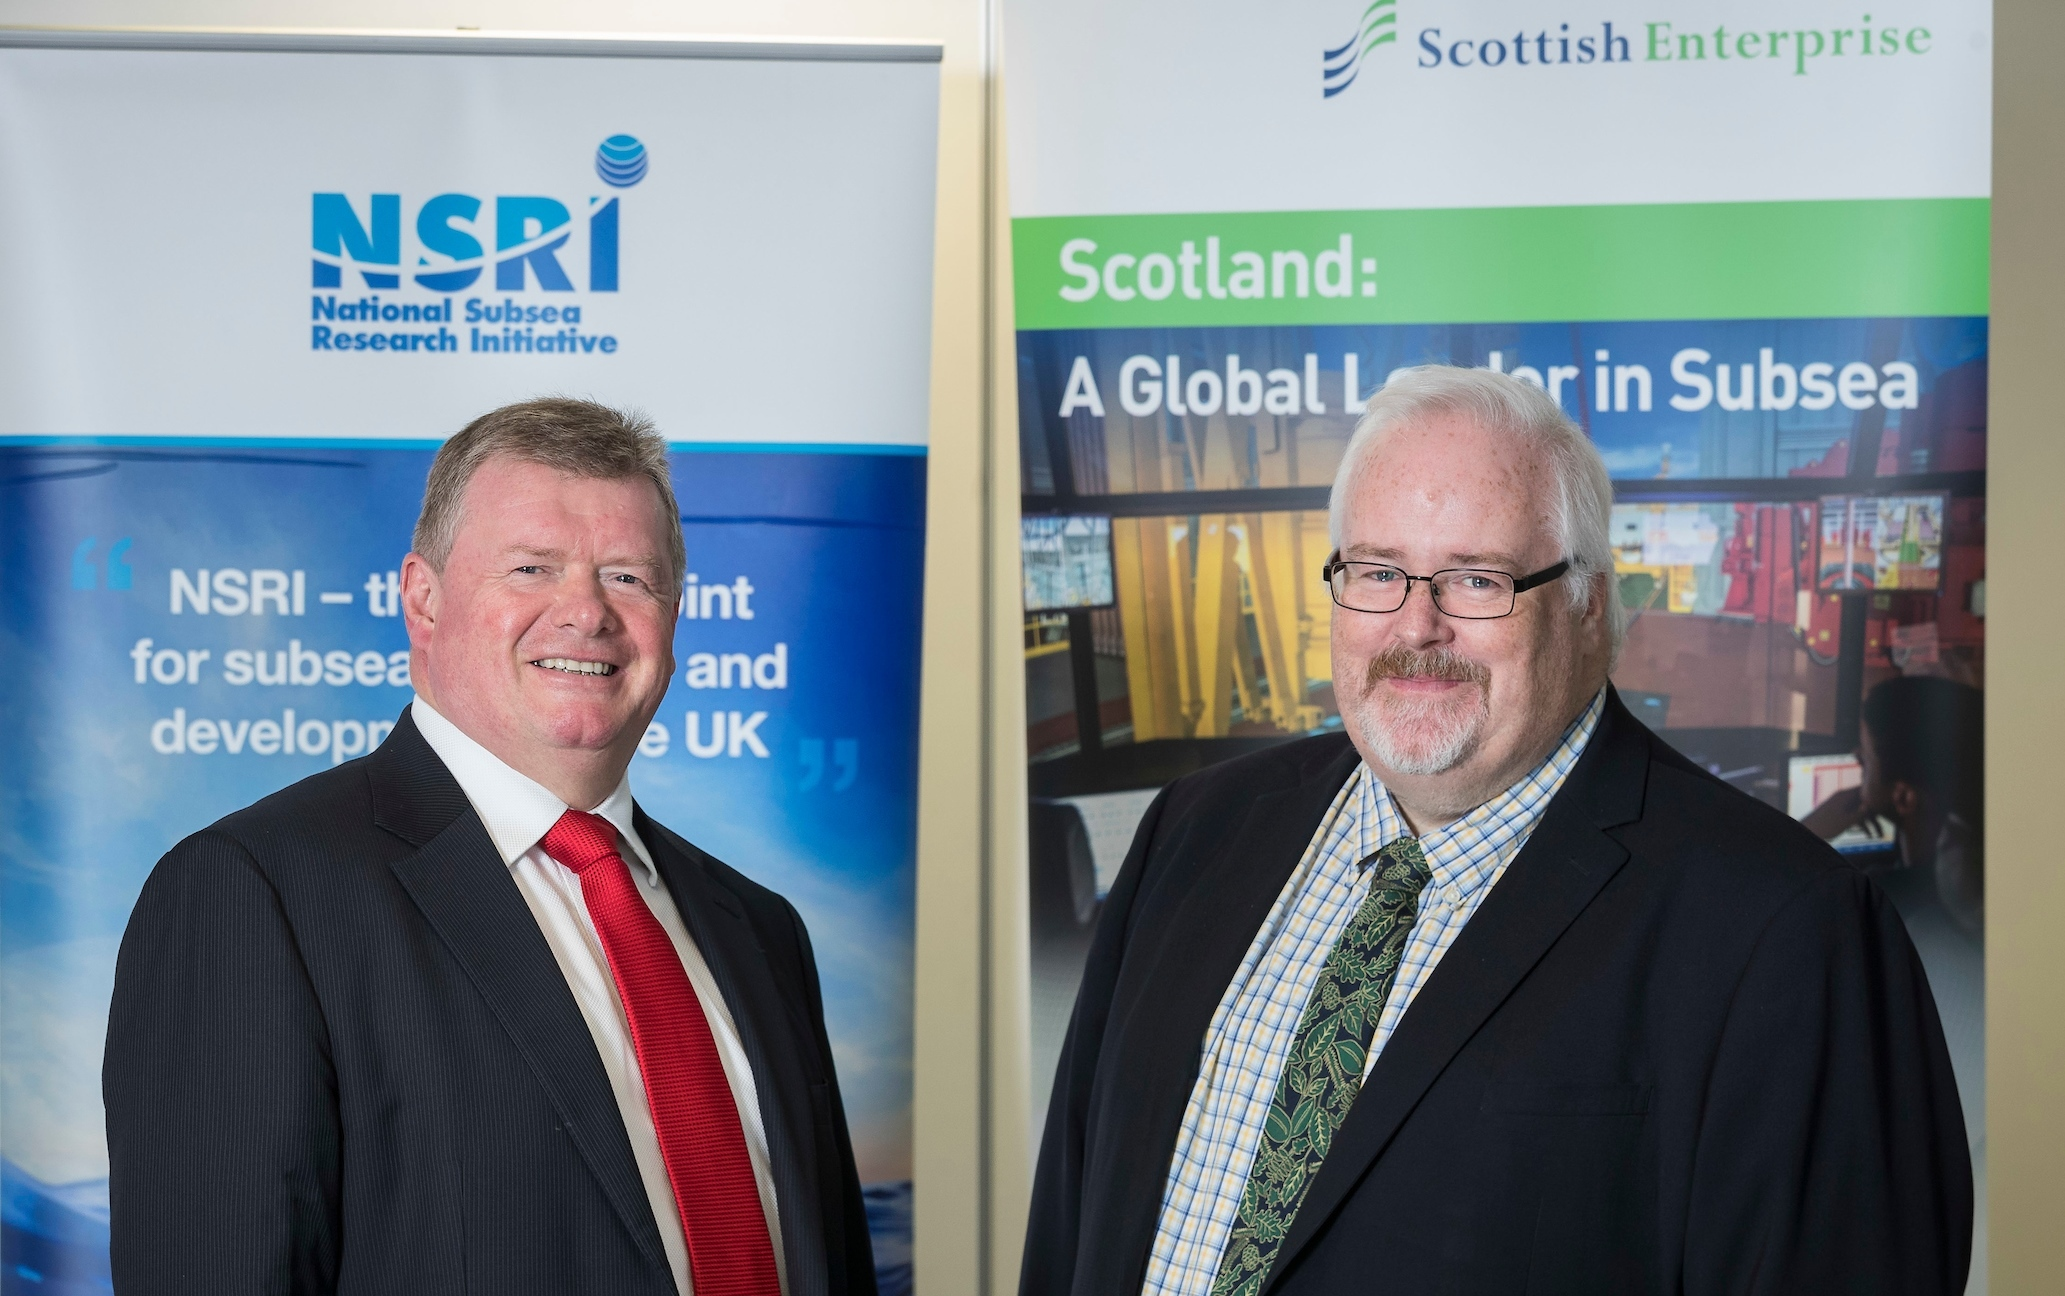 Tony Laing, NSRI director of research and market acceleration and Andy McDonald, sector director, energy and low carbon technologies at Scottish Enterprise.